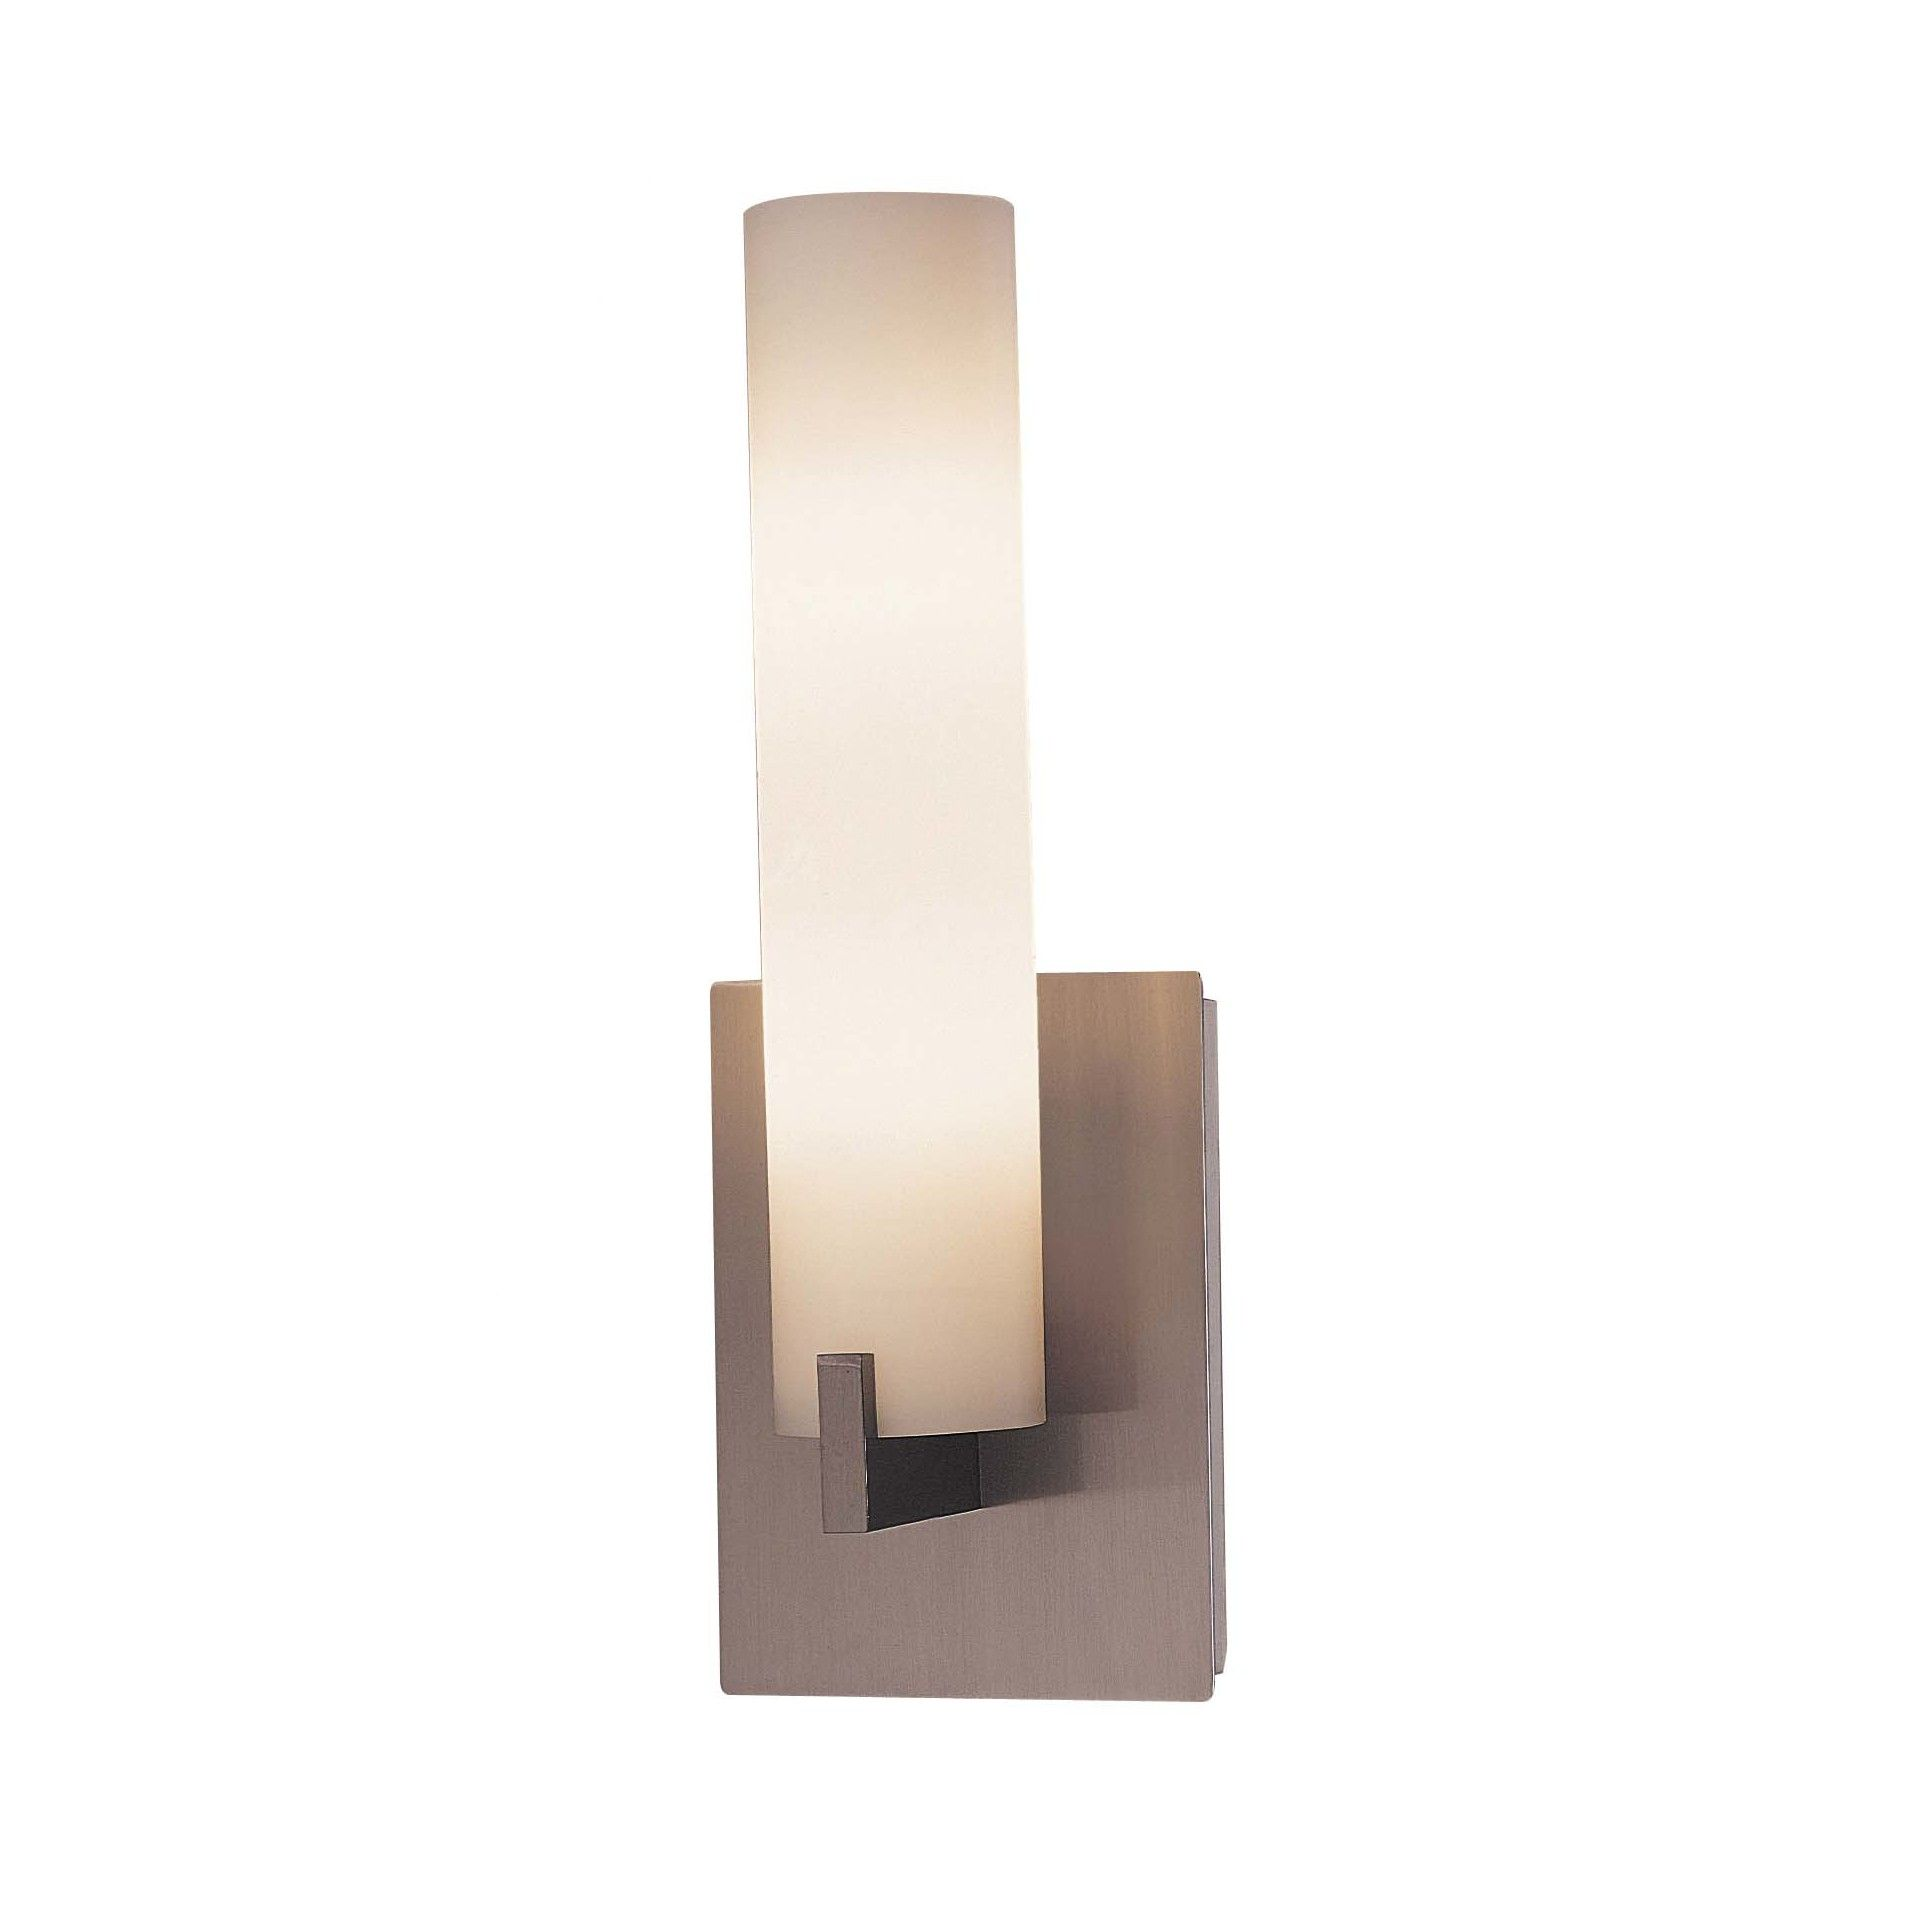 FREE SHIPPING! Shop Wayfair for George Kovacs by Minka Tube 1 Light Wall Sconce - Great Deals on all Decor products with the best selection to choose from!